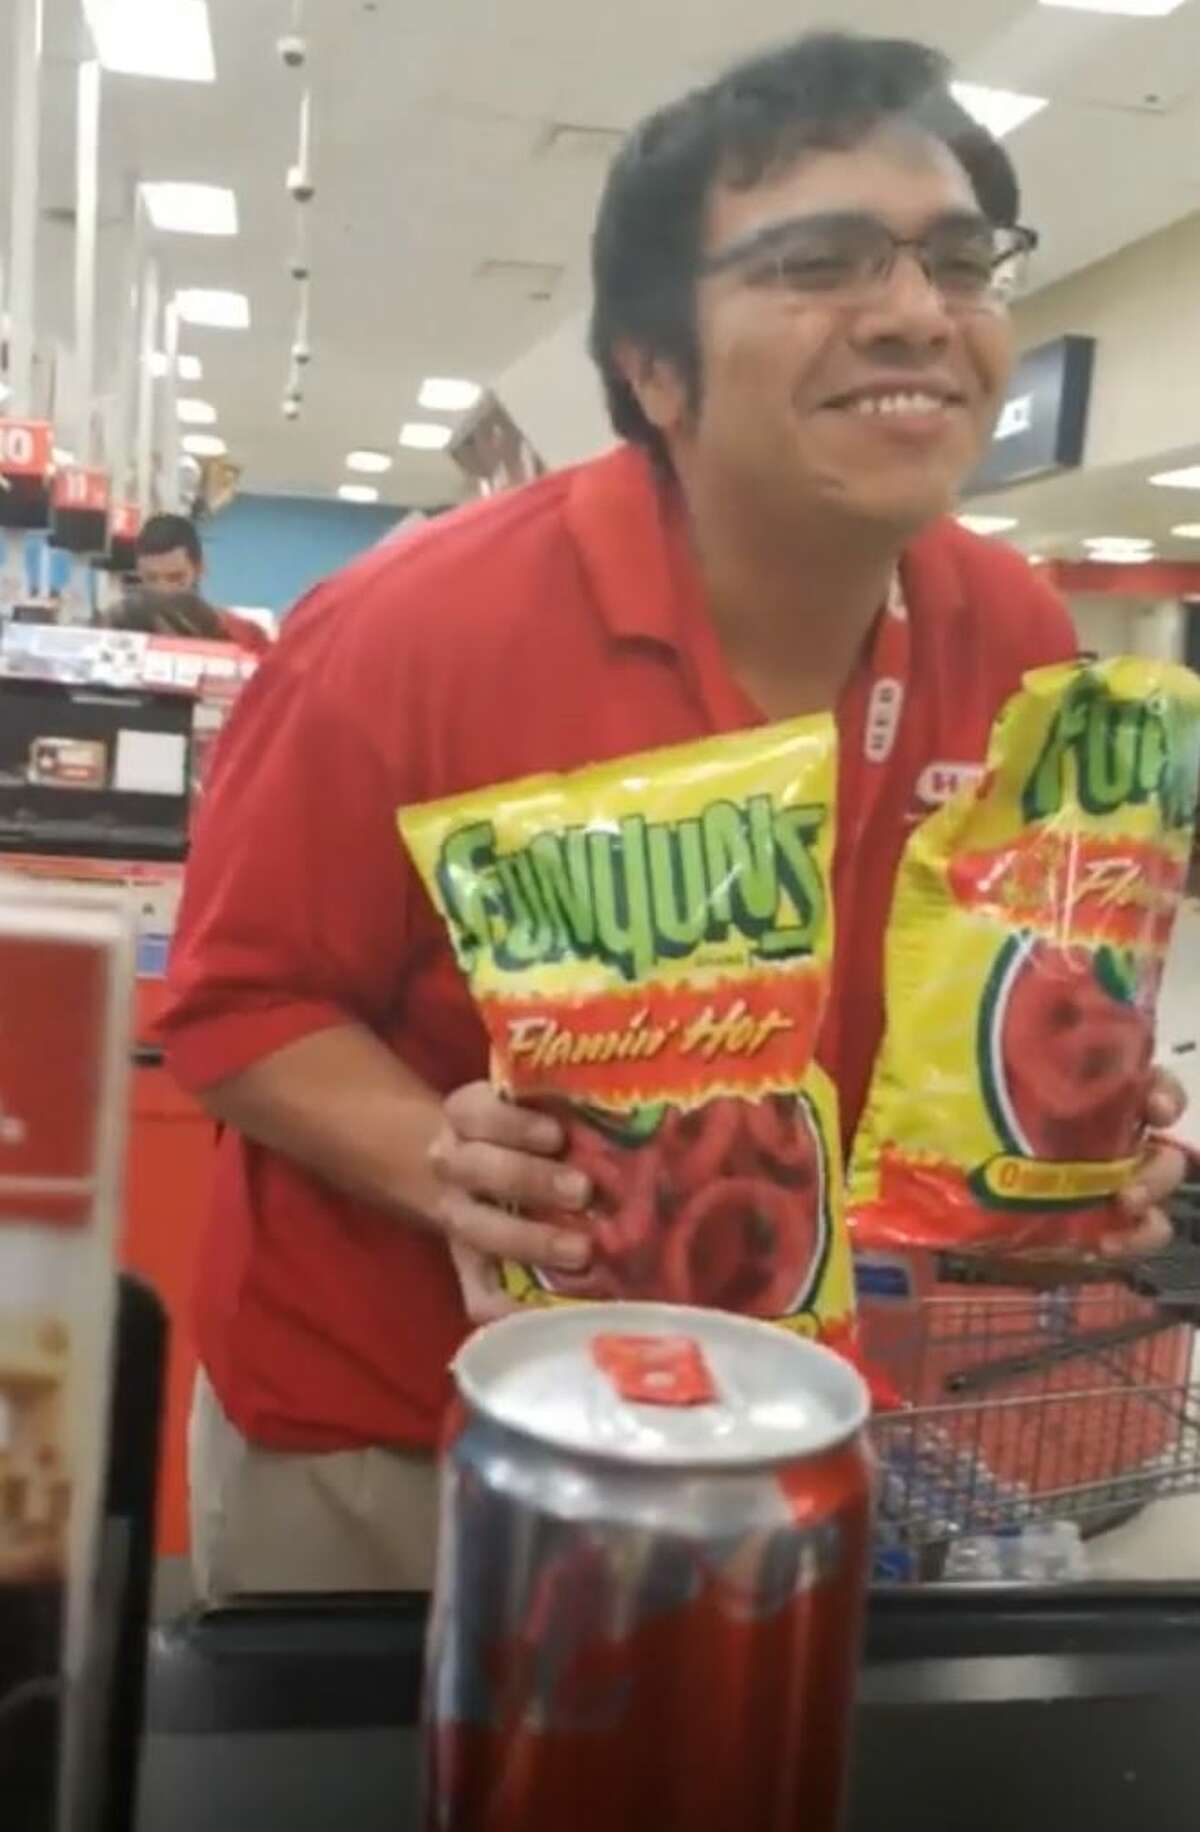 A San Antonio H-E-B cashier has garnered internet fame after a customer posted a video of his sales pitch, which included an original rap.